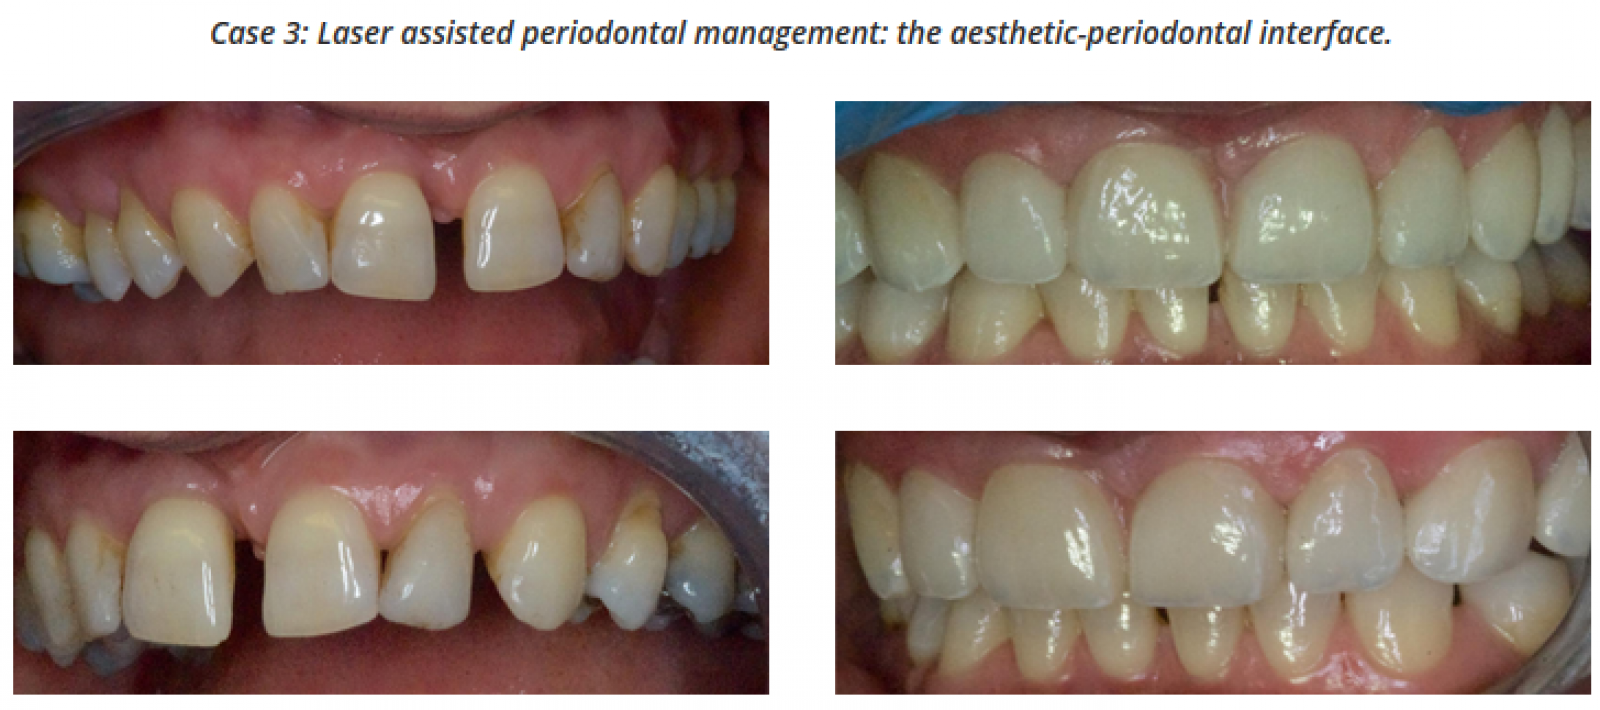 Laser Assisted Periodontal Management. The Aesthetic-Periodontal Interface. Dr Mark Cronshaw, BIOLASE.png